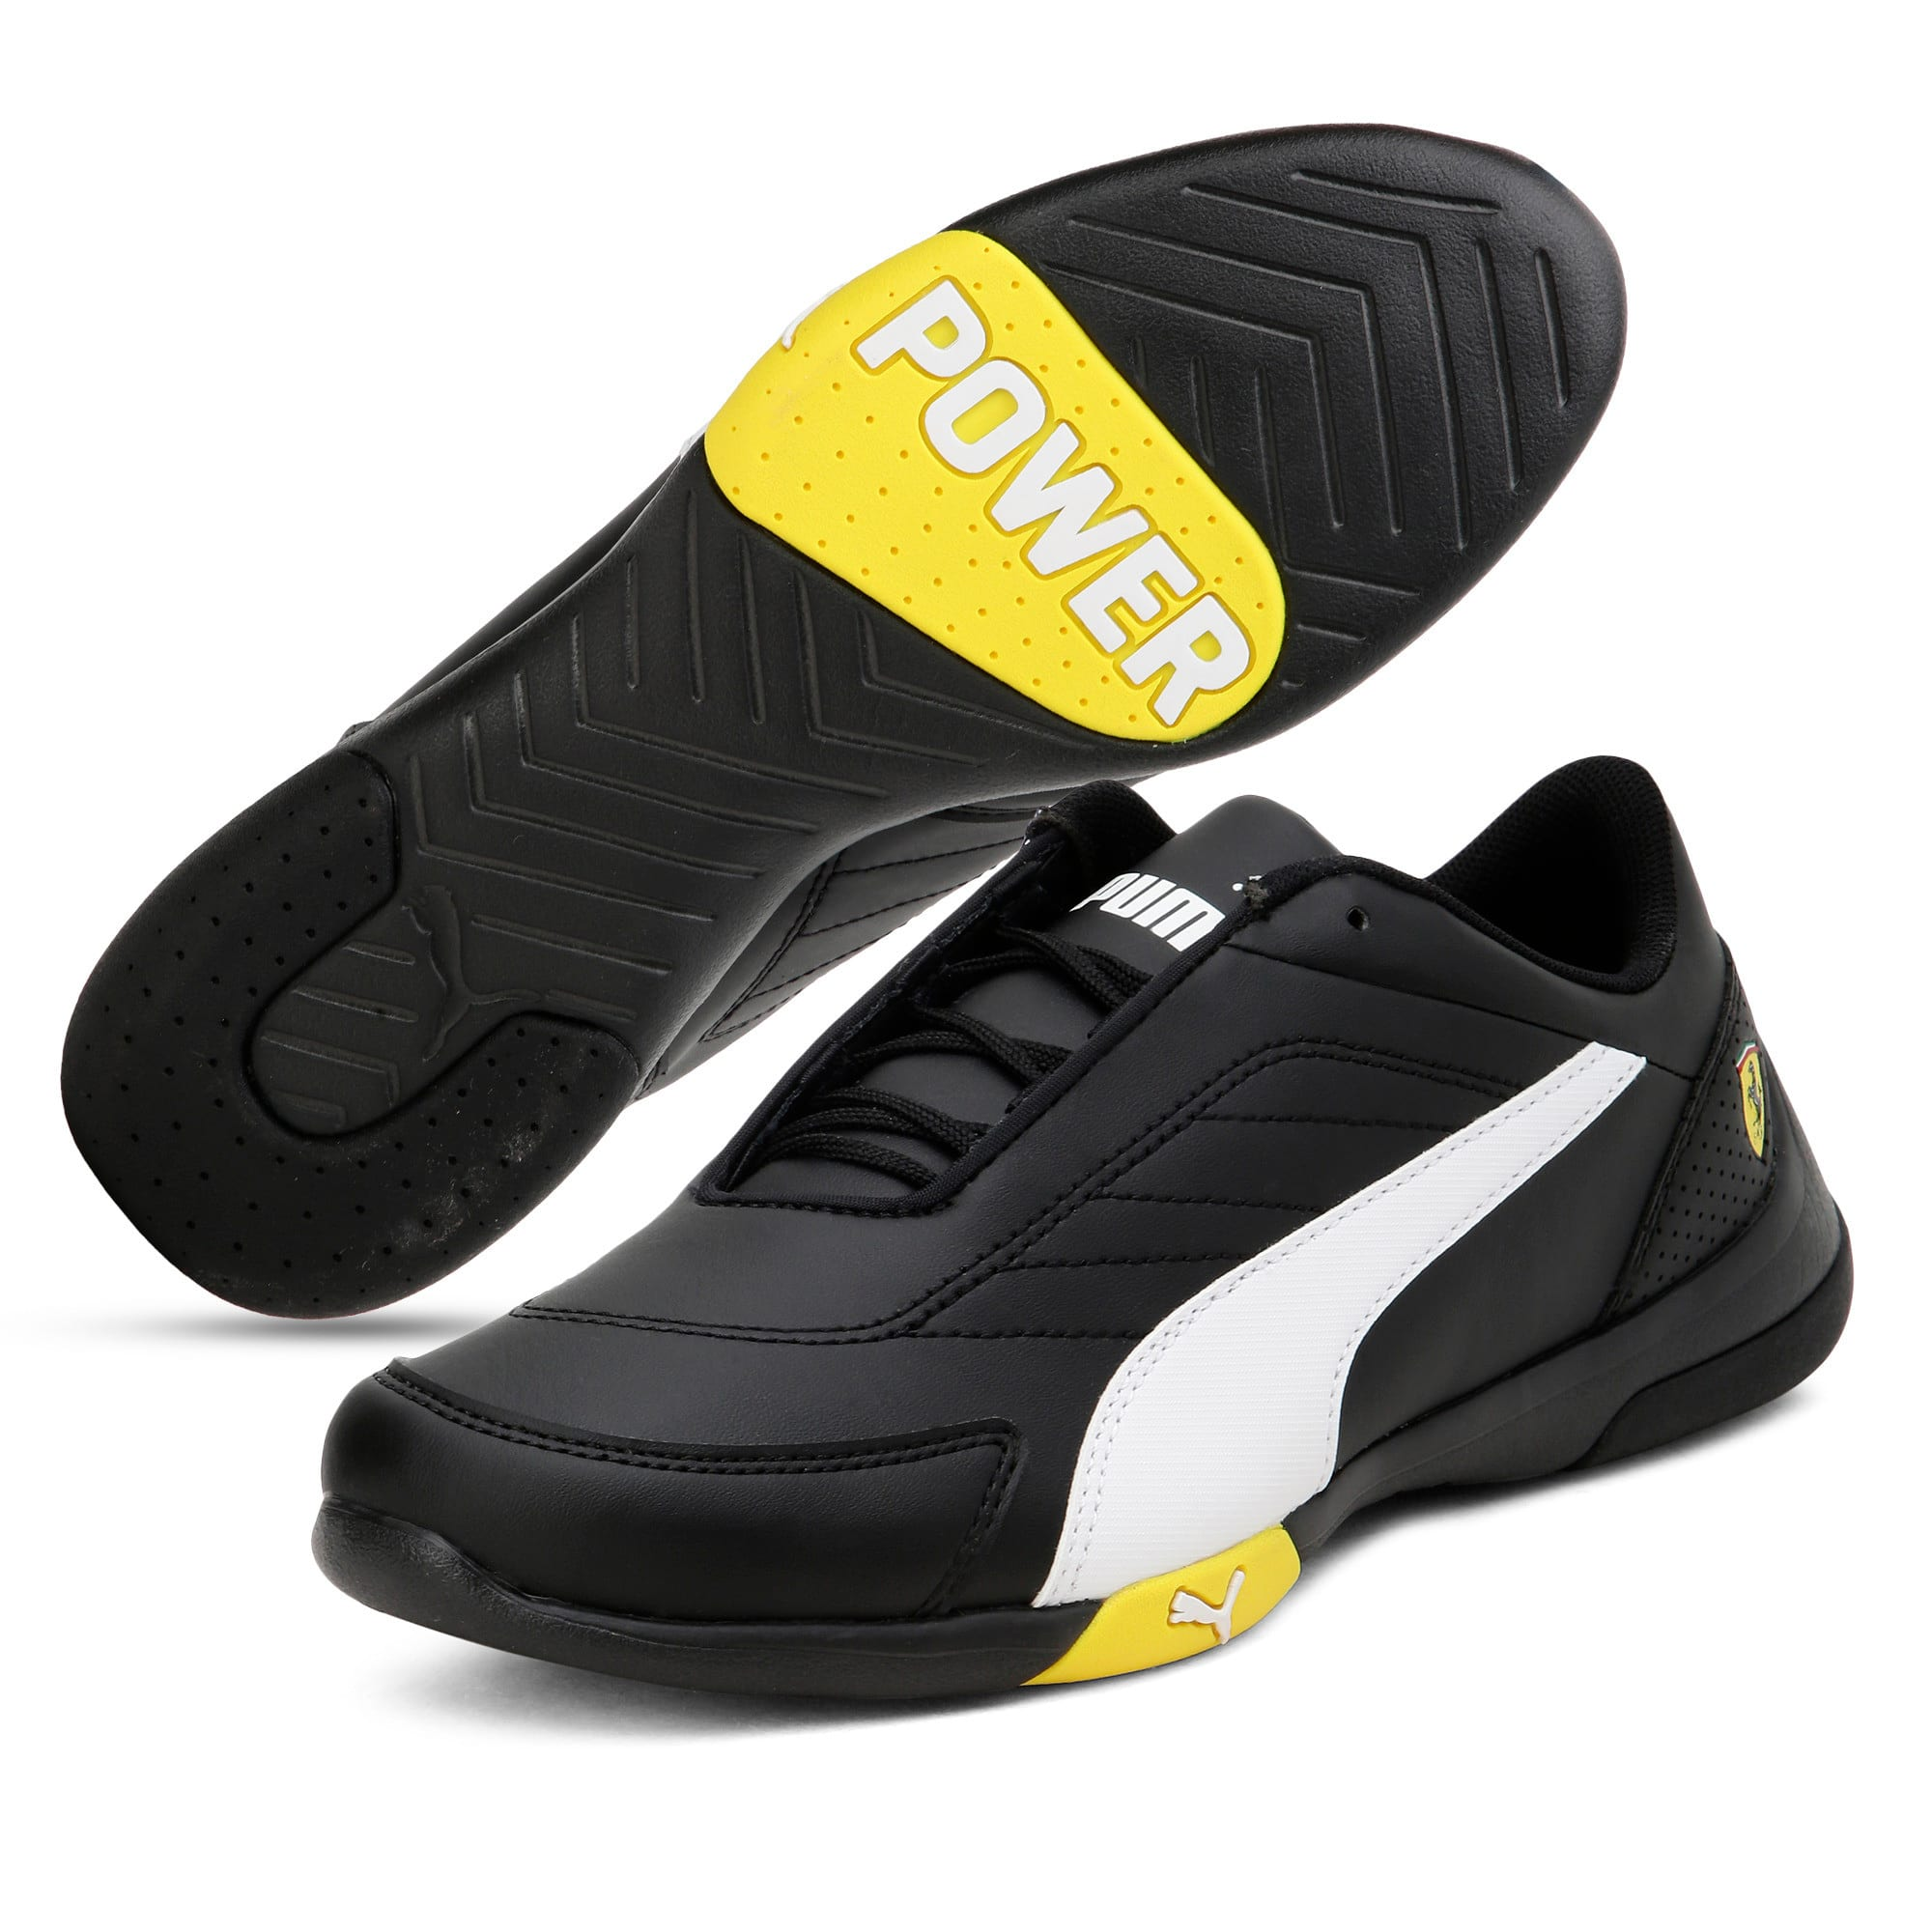 Thumbnail 2 of Ferrari Kart Cat III Youth Trainers, Black-White-Blazing Yellow, medium-IND